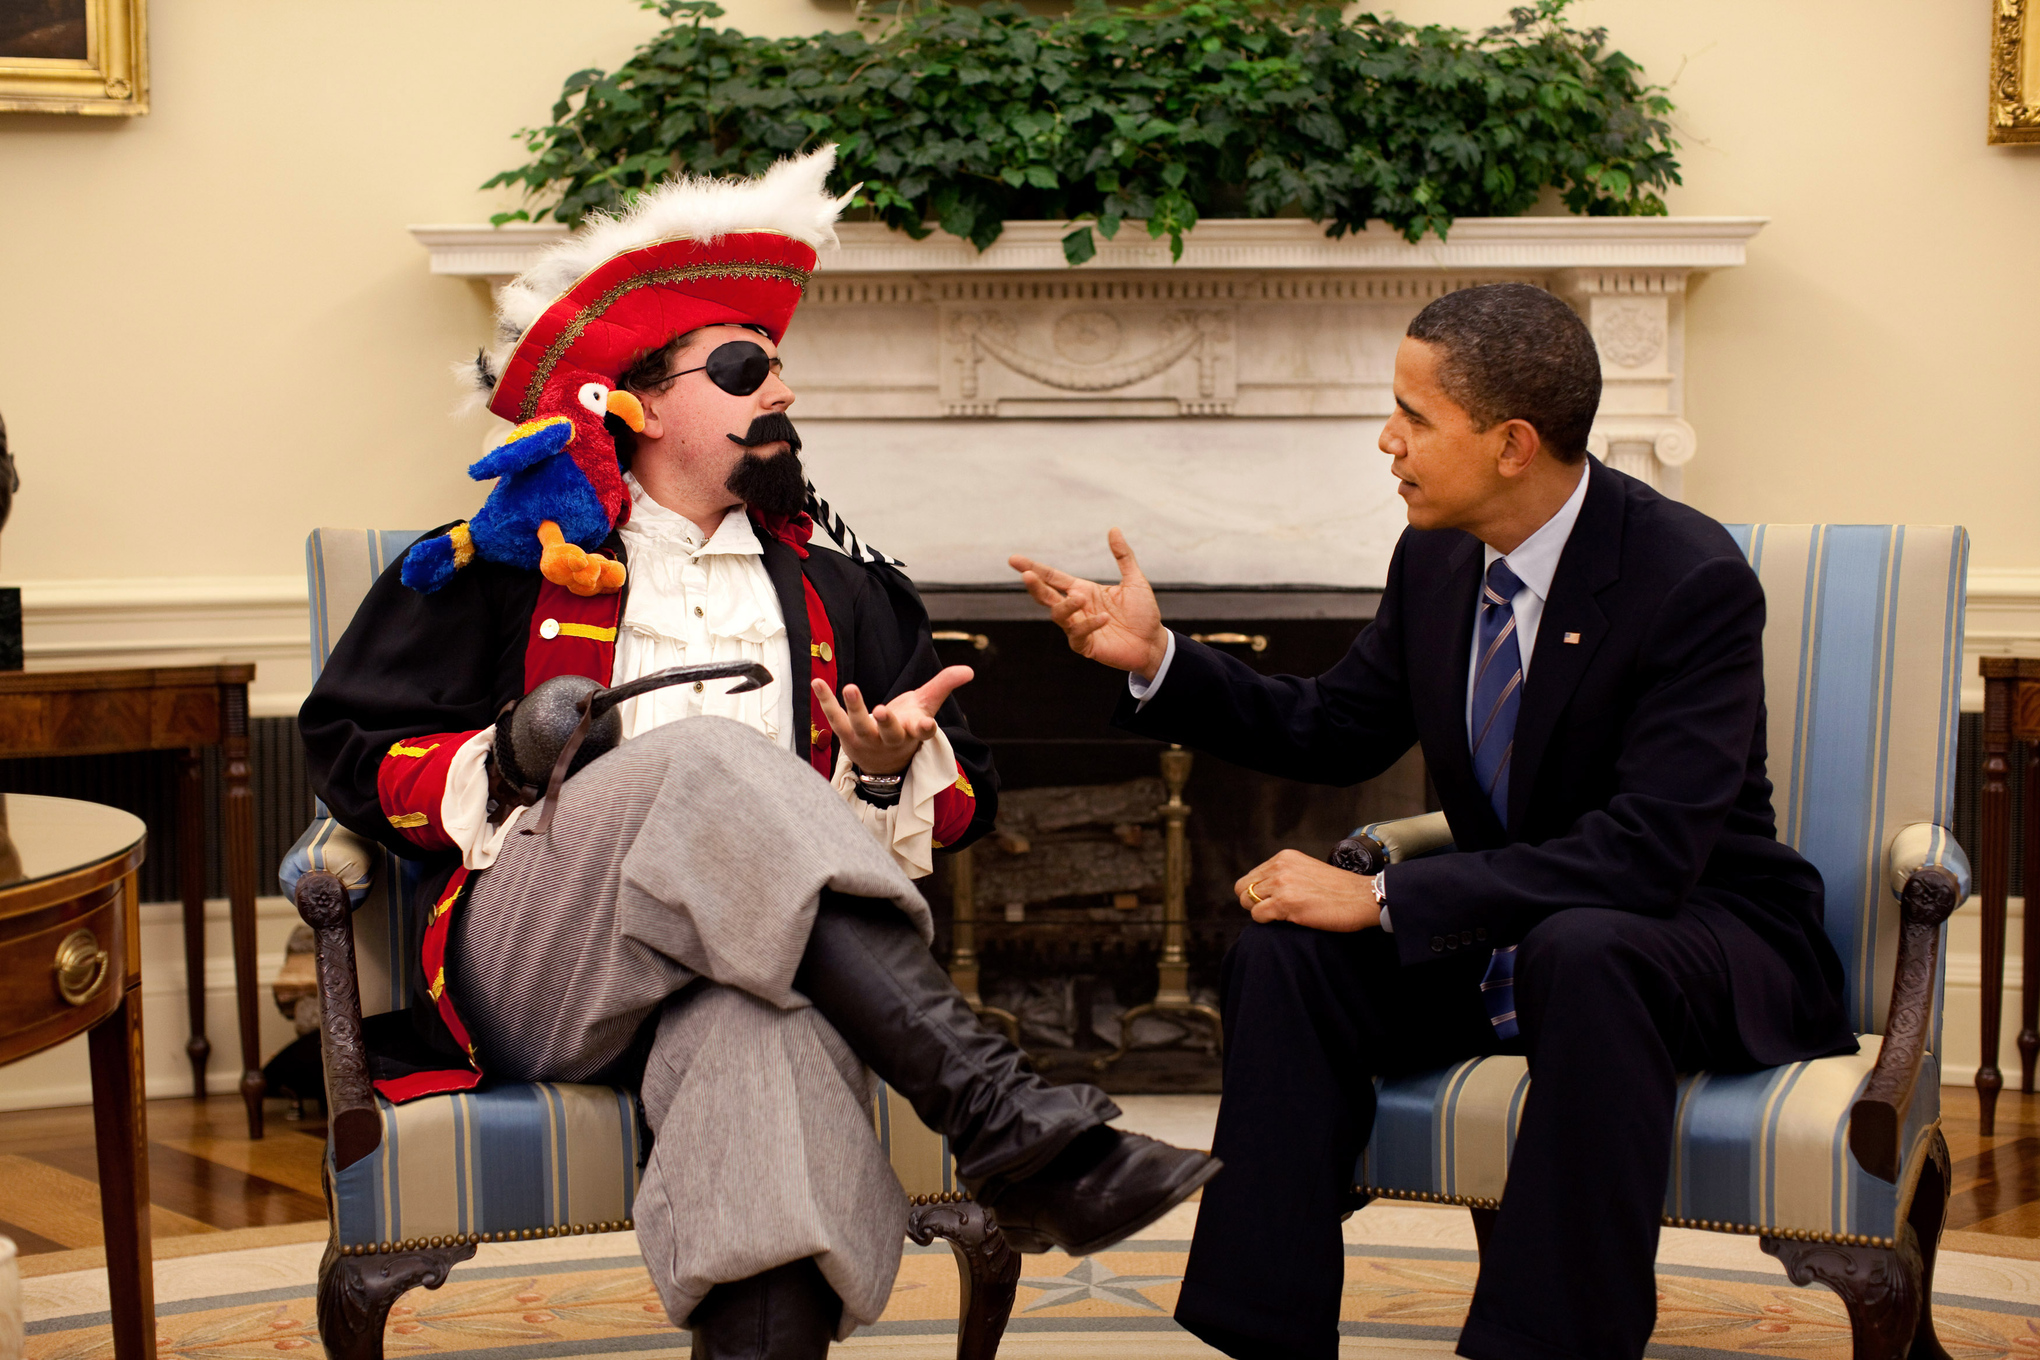 Cody Keenan (then a White House speechwriter, now director of speechwriting) dresses up as a pirate for a 2009 White House Correspondents' Dinner gag.